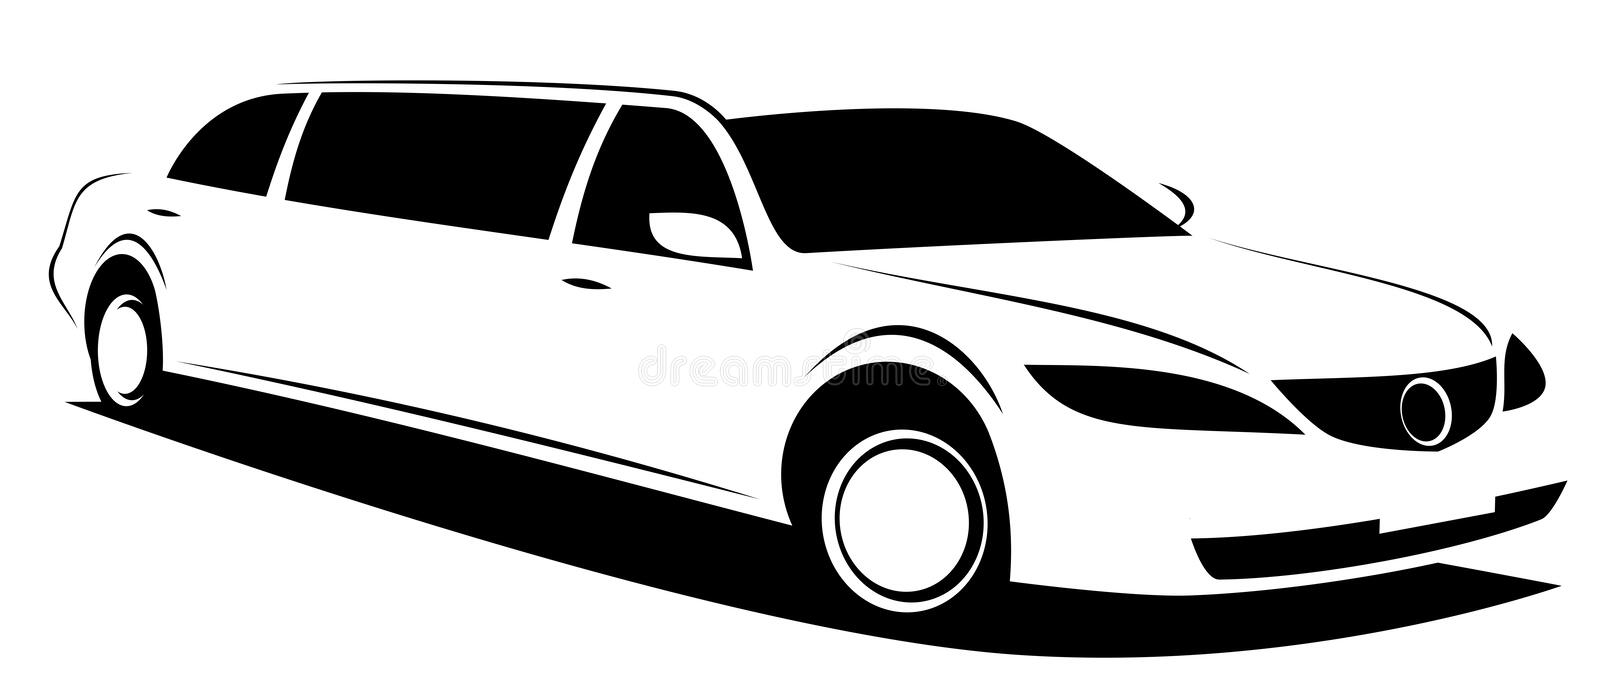 Vector illustration of a limousine car used for VIP, celebrities or wedding royalty free stock photography